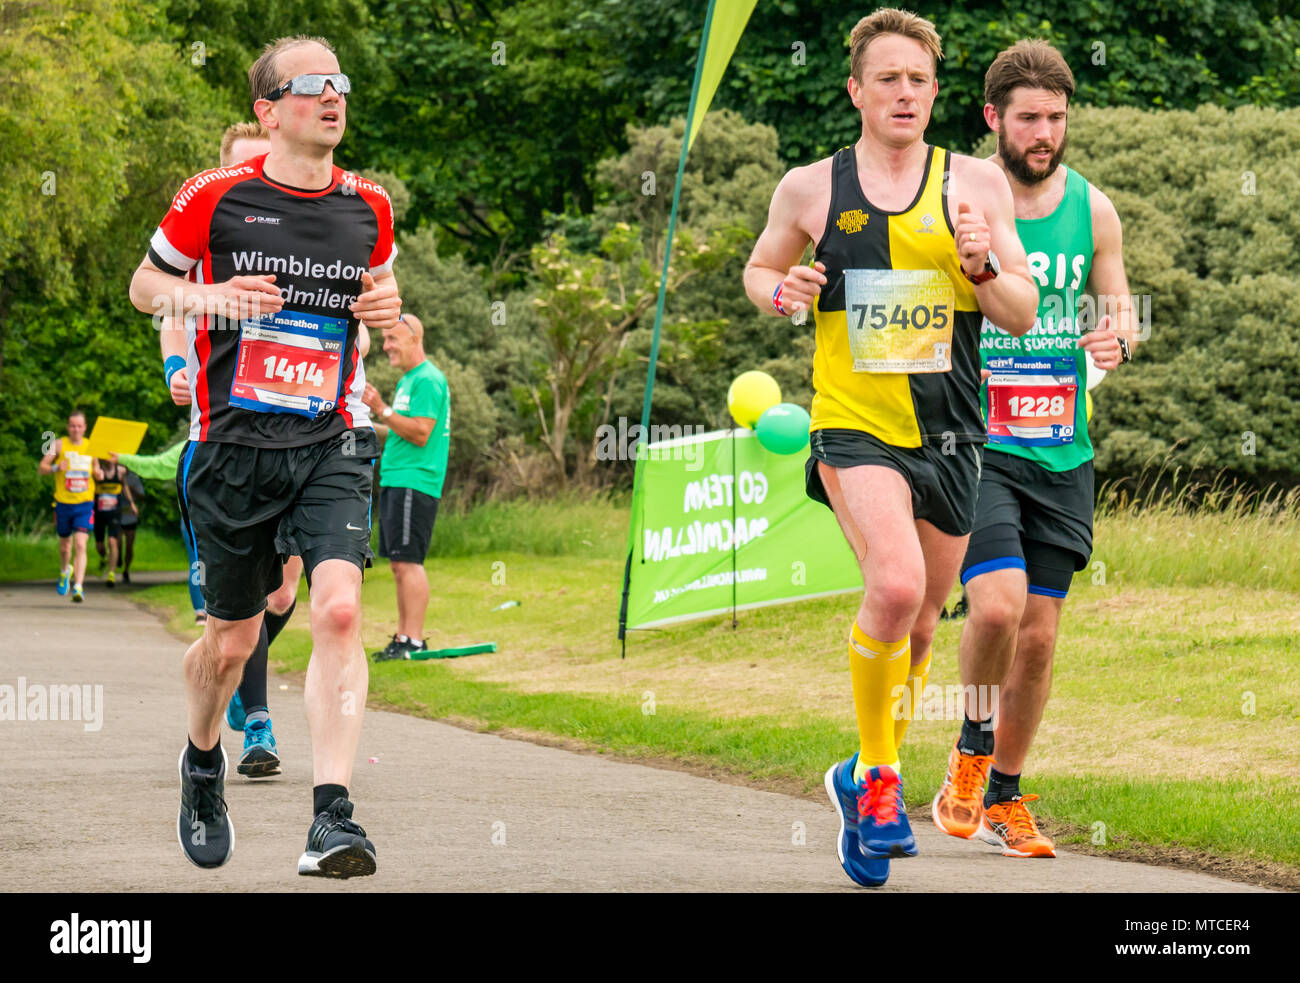 Gosford Estate, East Lothian, Scotland, UK. 28th May 2017. Tired male marathon runners in Edinburgh Marathon at Mile 18 - Stock Image